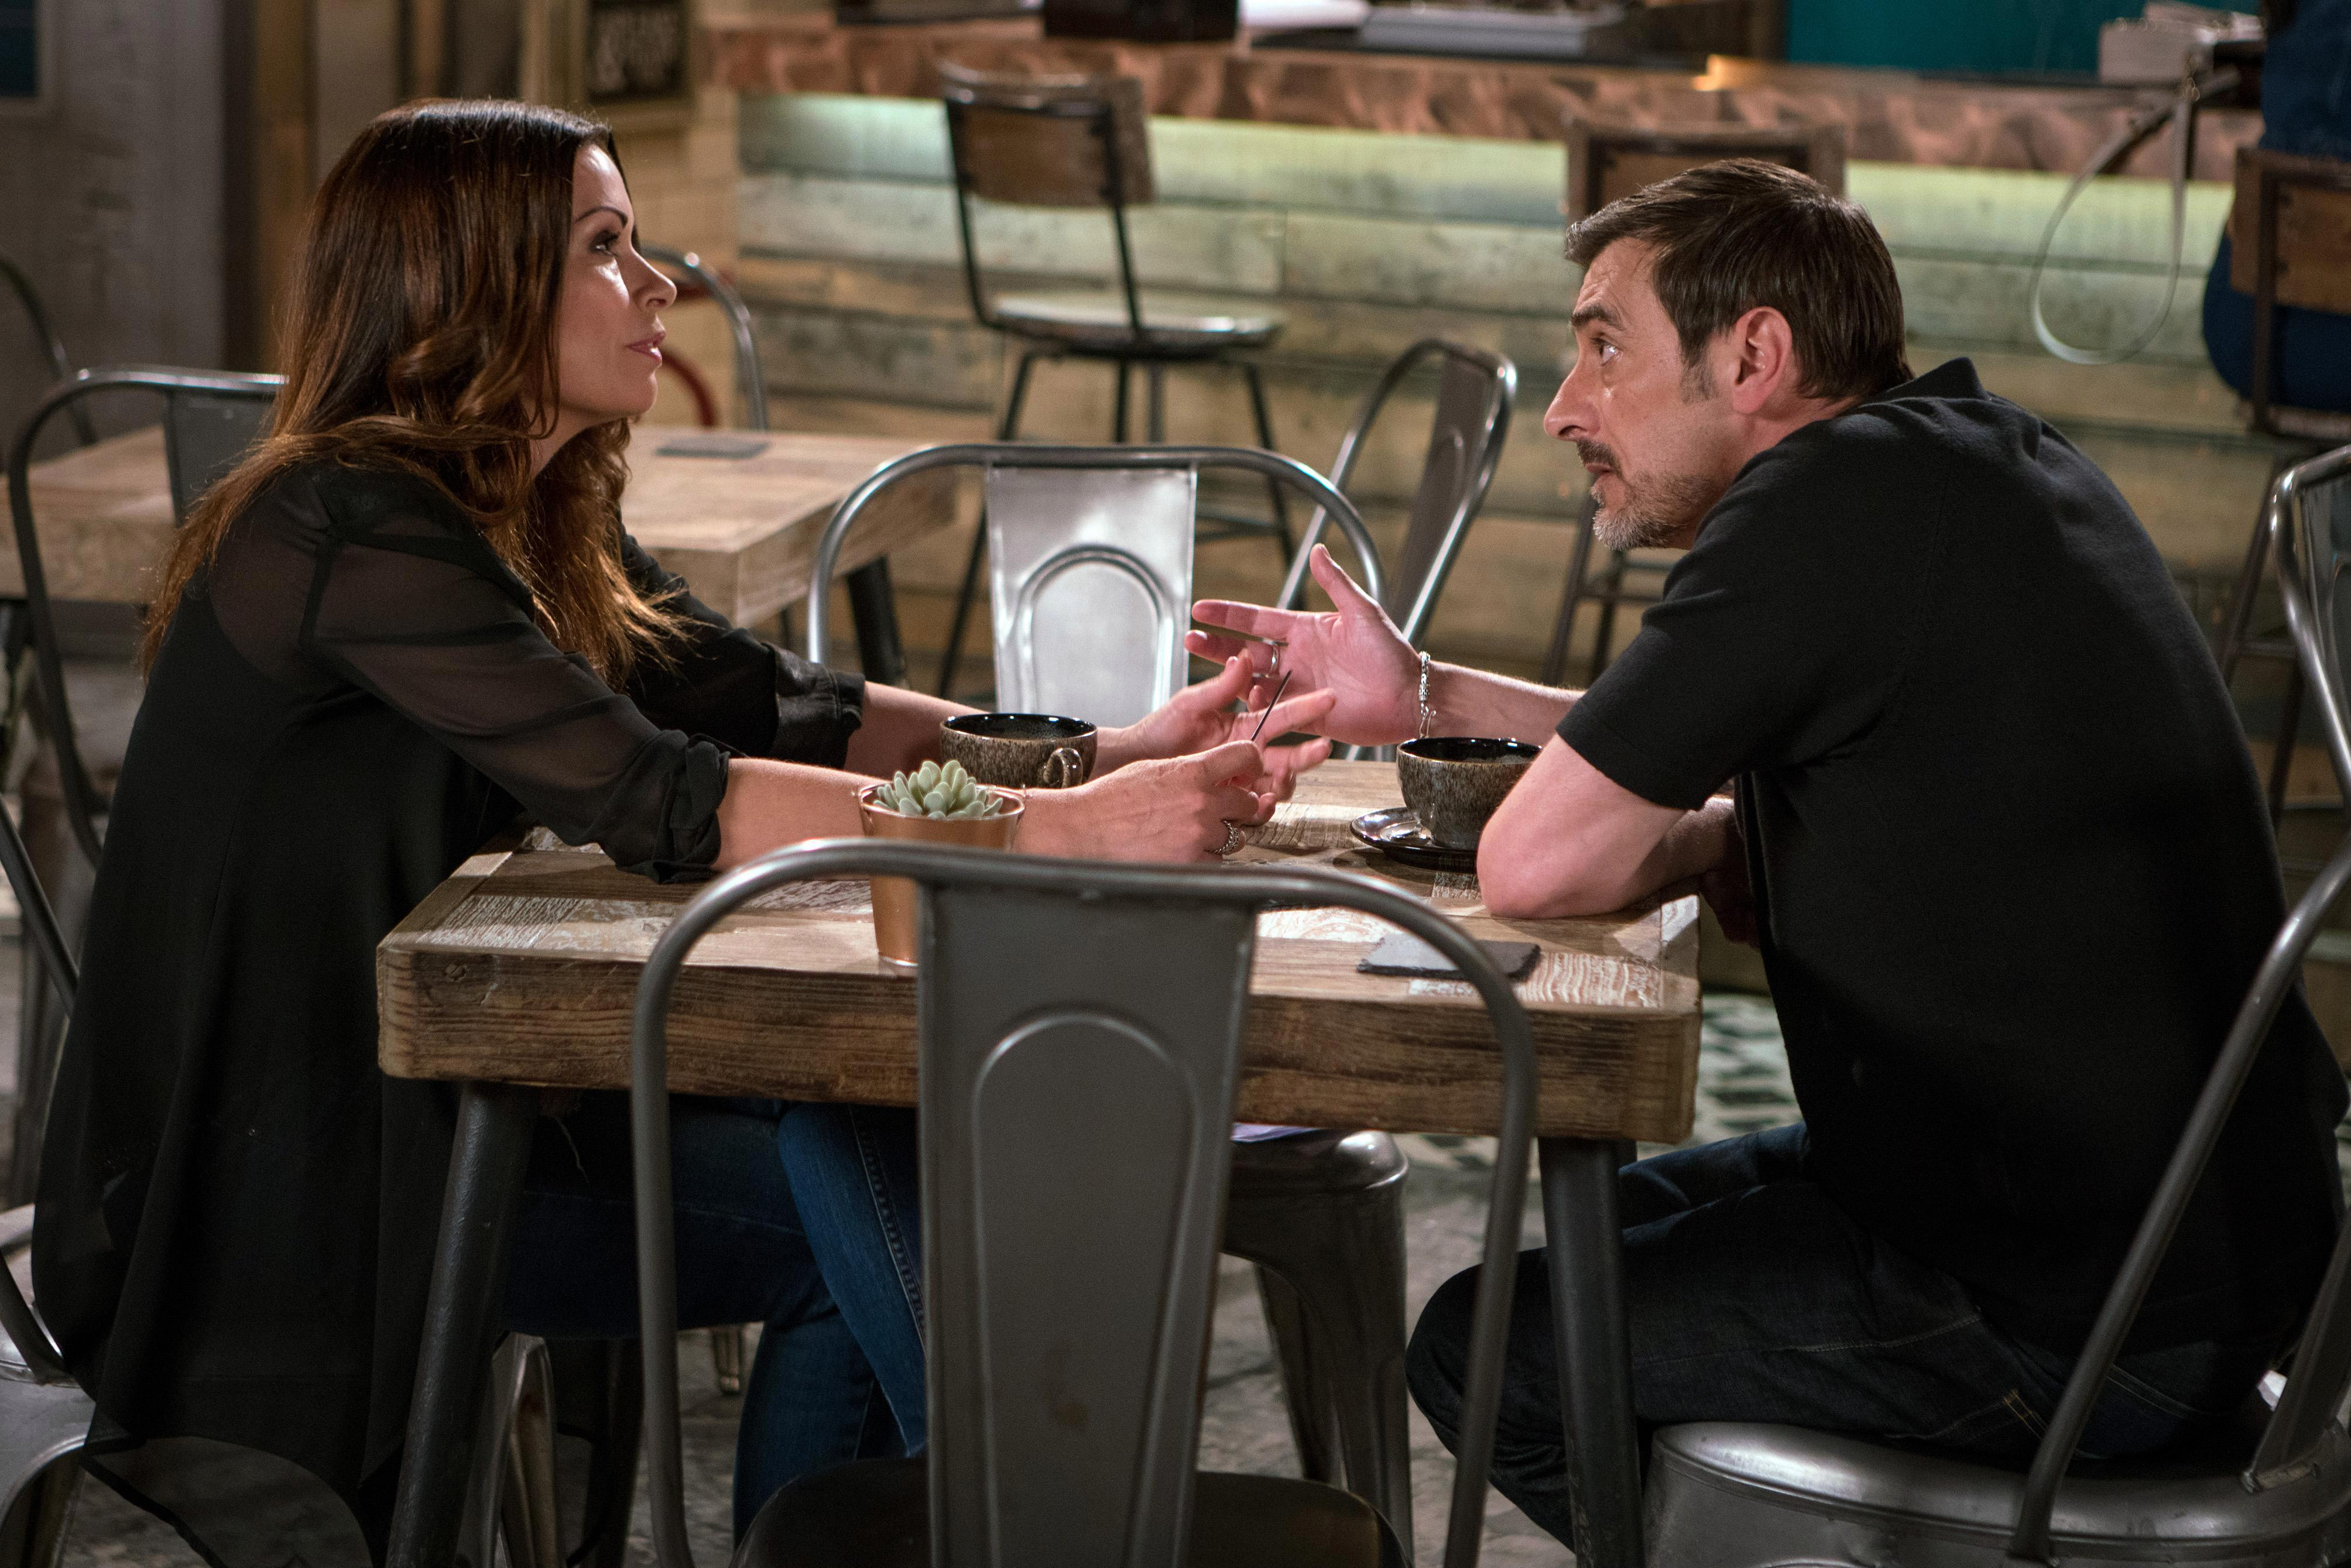 Coronation Street spoilers: Peter Barlow set for reunion with ex-wife Carla Connor leaving Toyah Battersby devastated